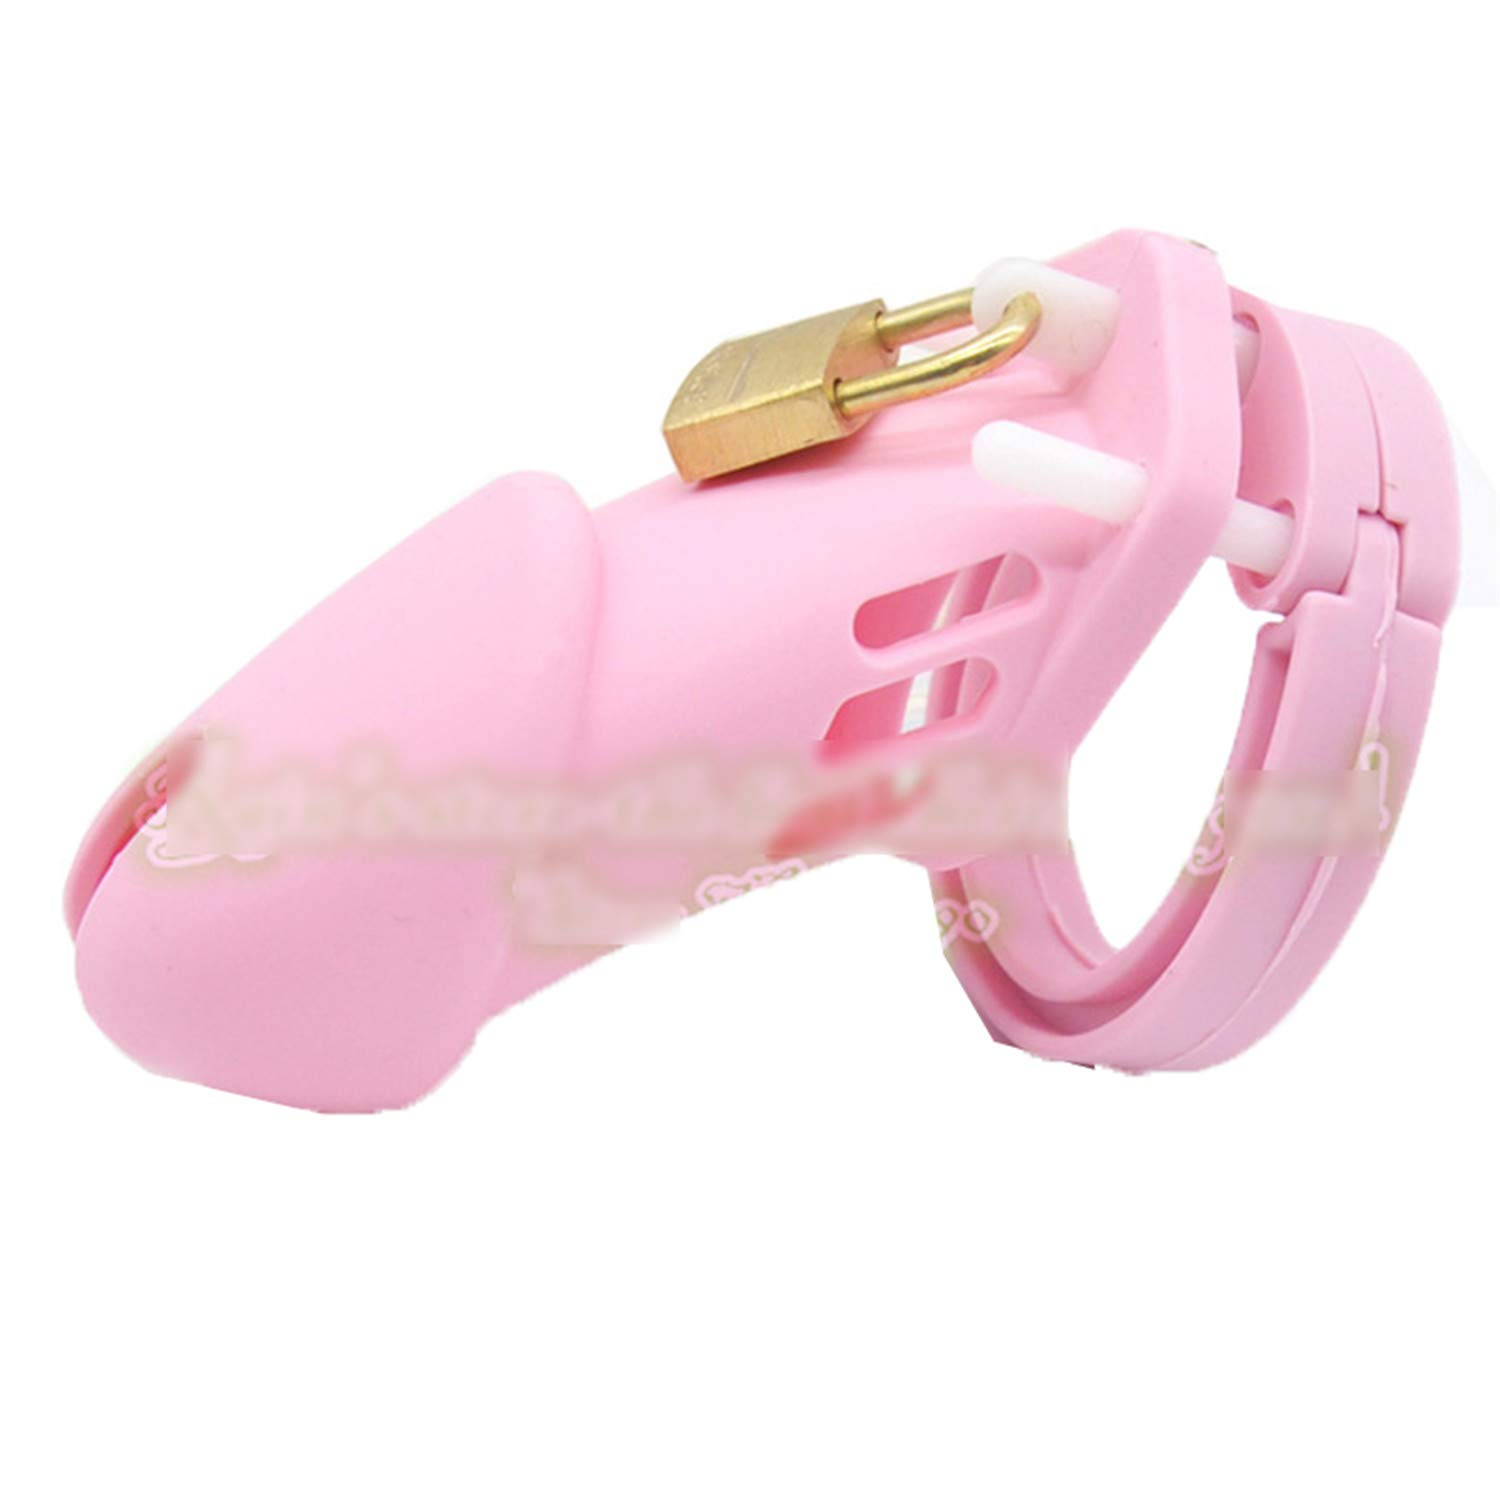 SCGOLD Saft CB6000 Silicone Male Chastity Device Chastity Cage Sex Toys for Men Sex Products Pink